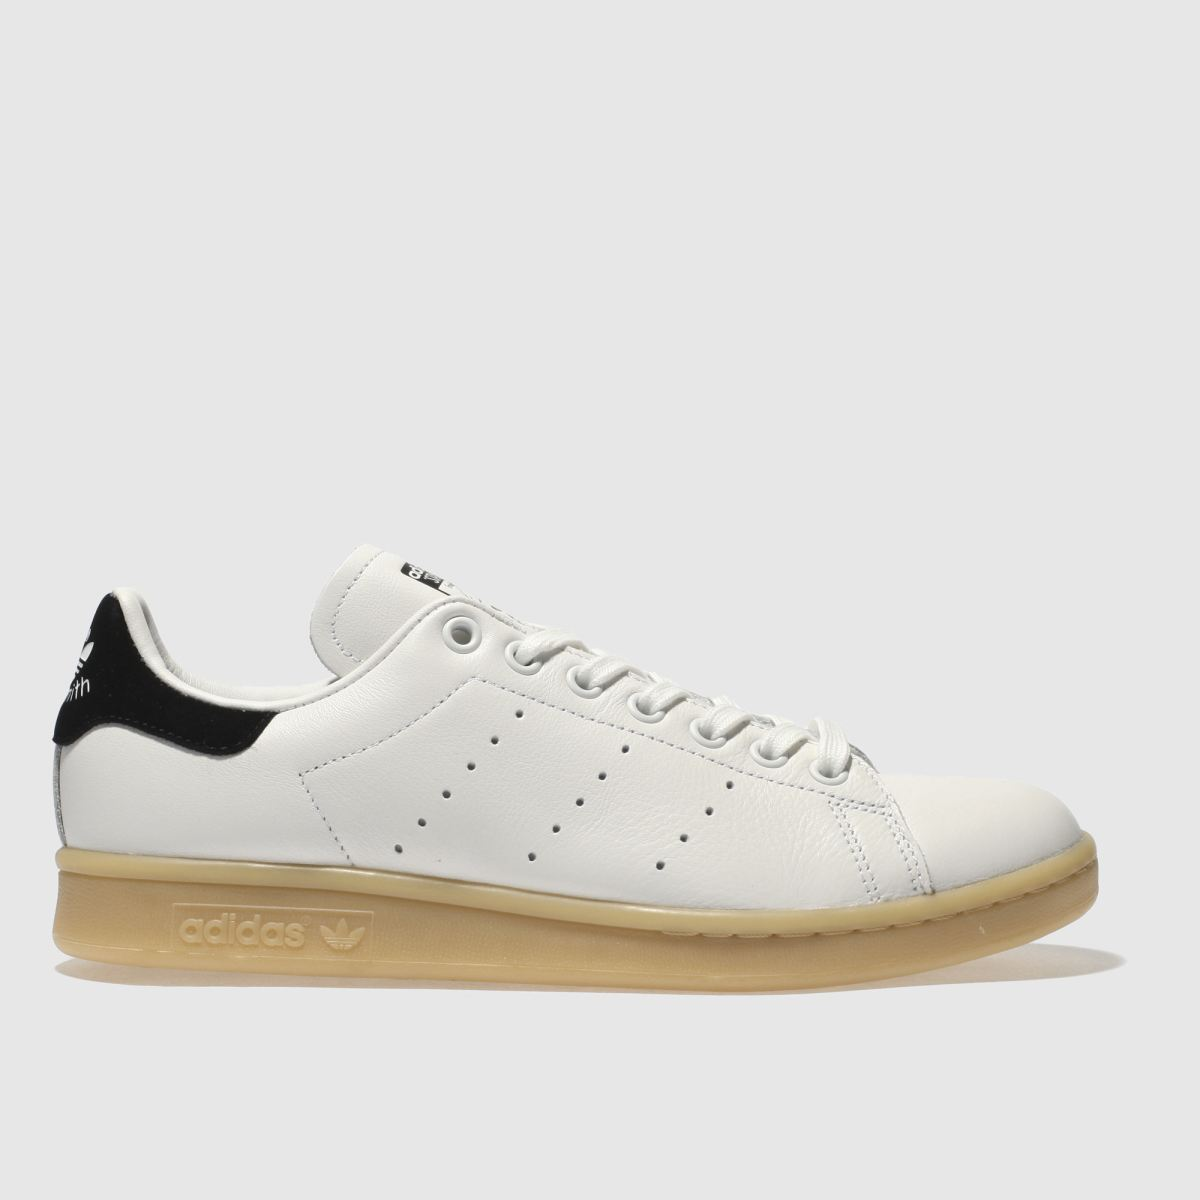 Adidas White & Black Stan Smith Leather Gum Trainers